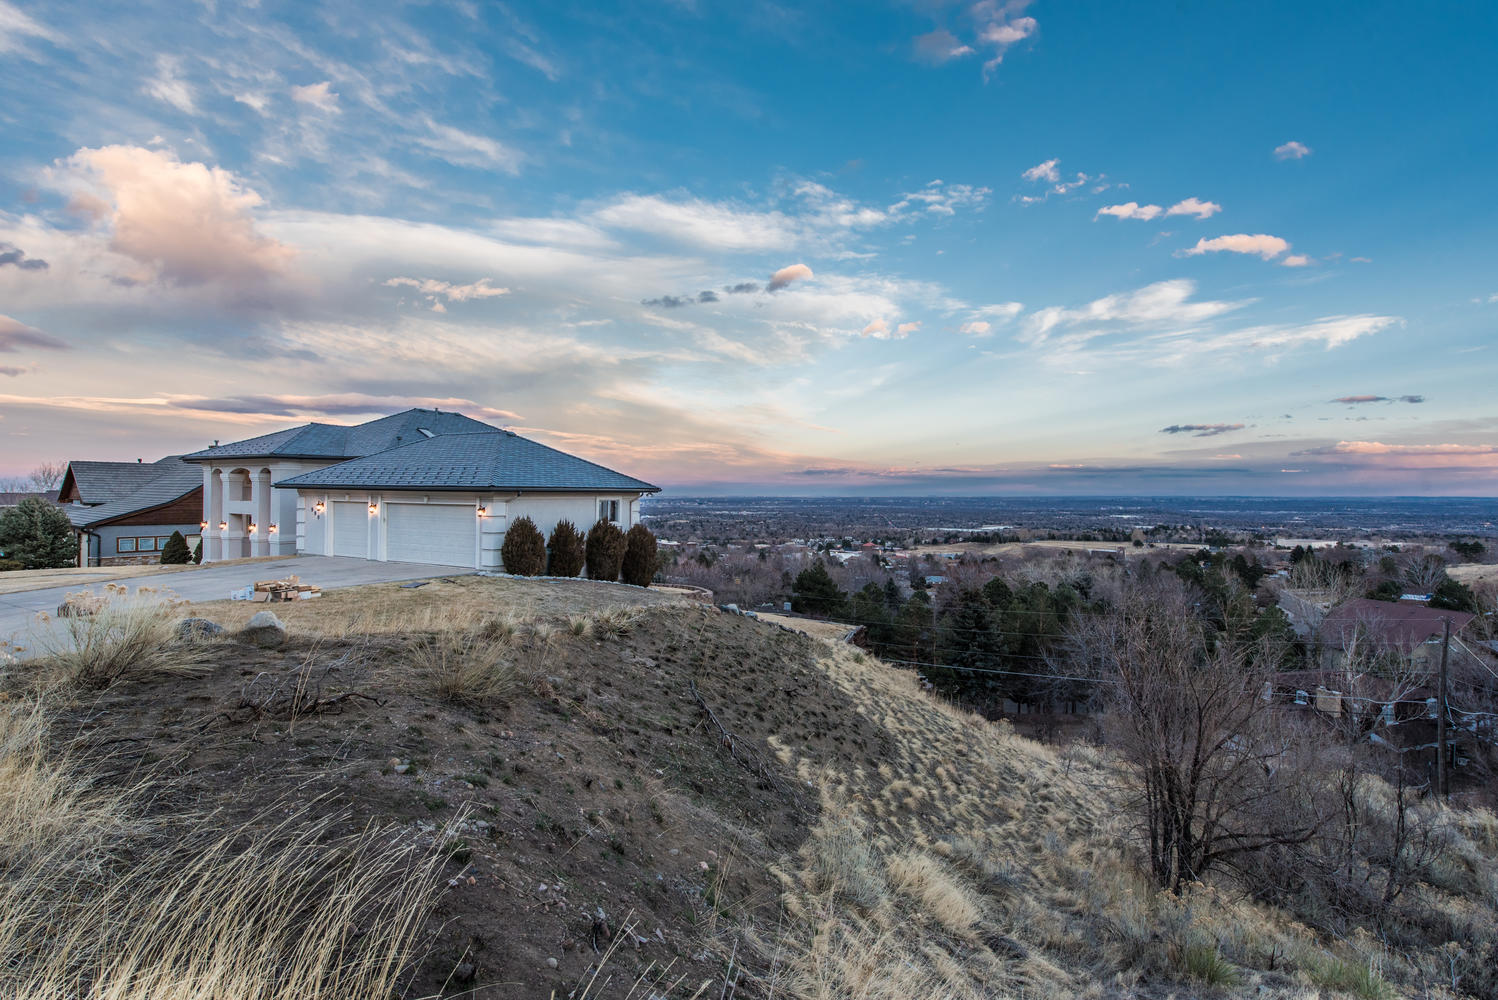 Single Family Home for Active at Magnificent views in every direction! 980 S Coors Drive Lakewood, 80228 United States